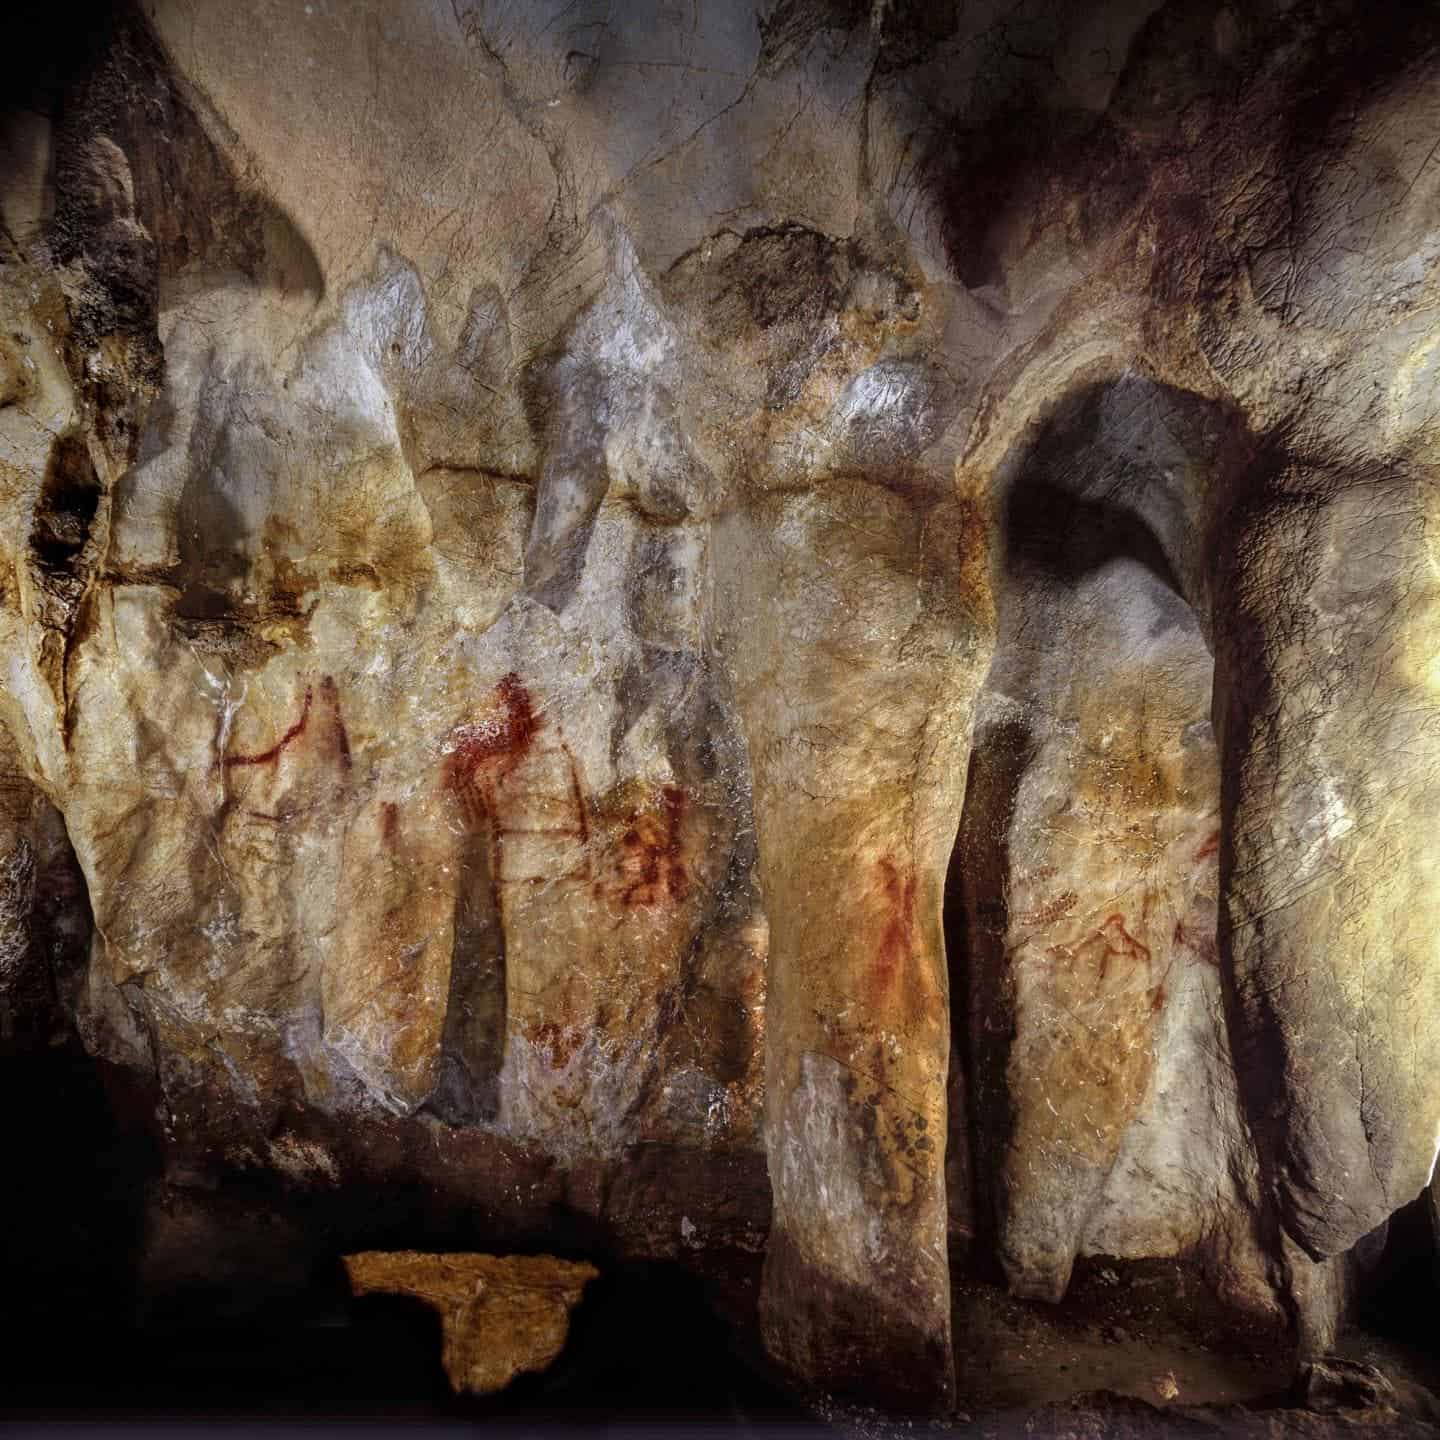 The Earliest European Cave Art Was Made by Neanderthals